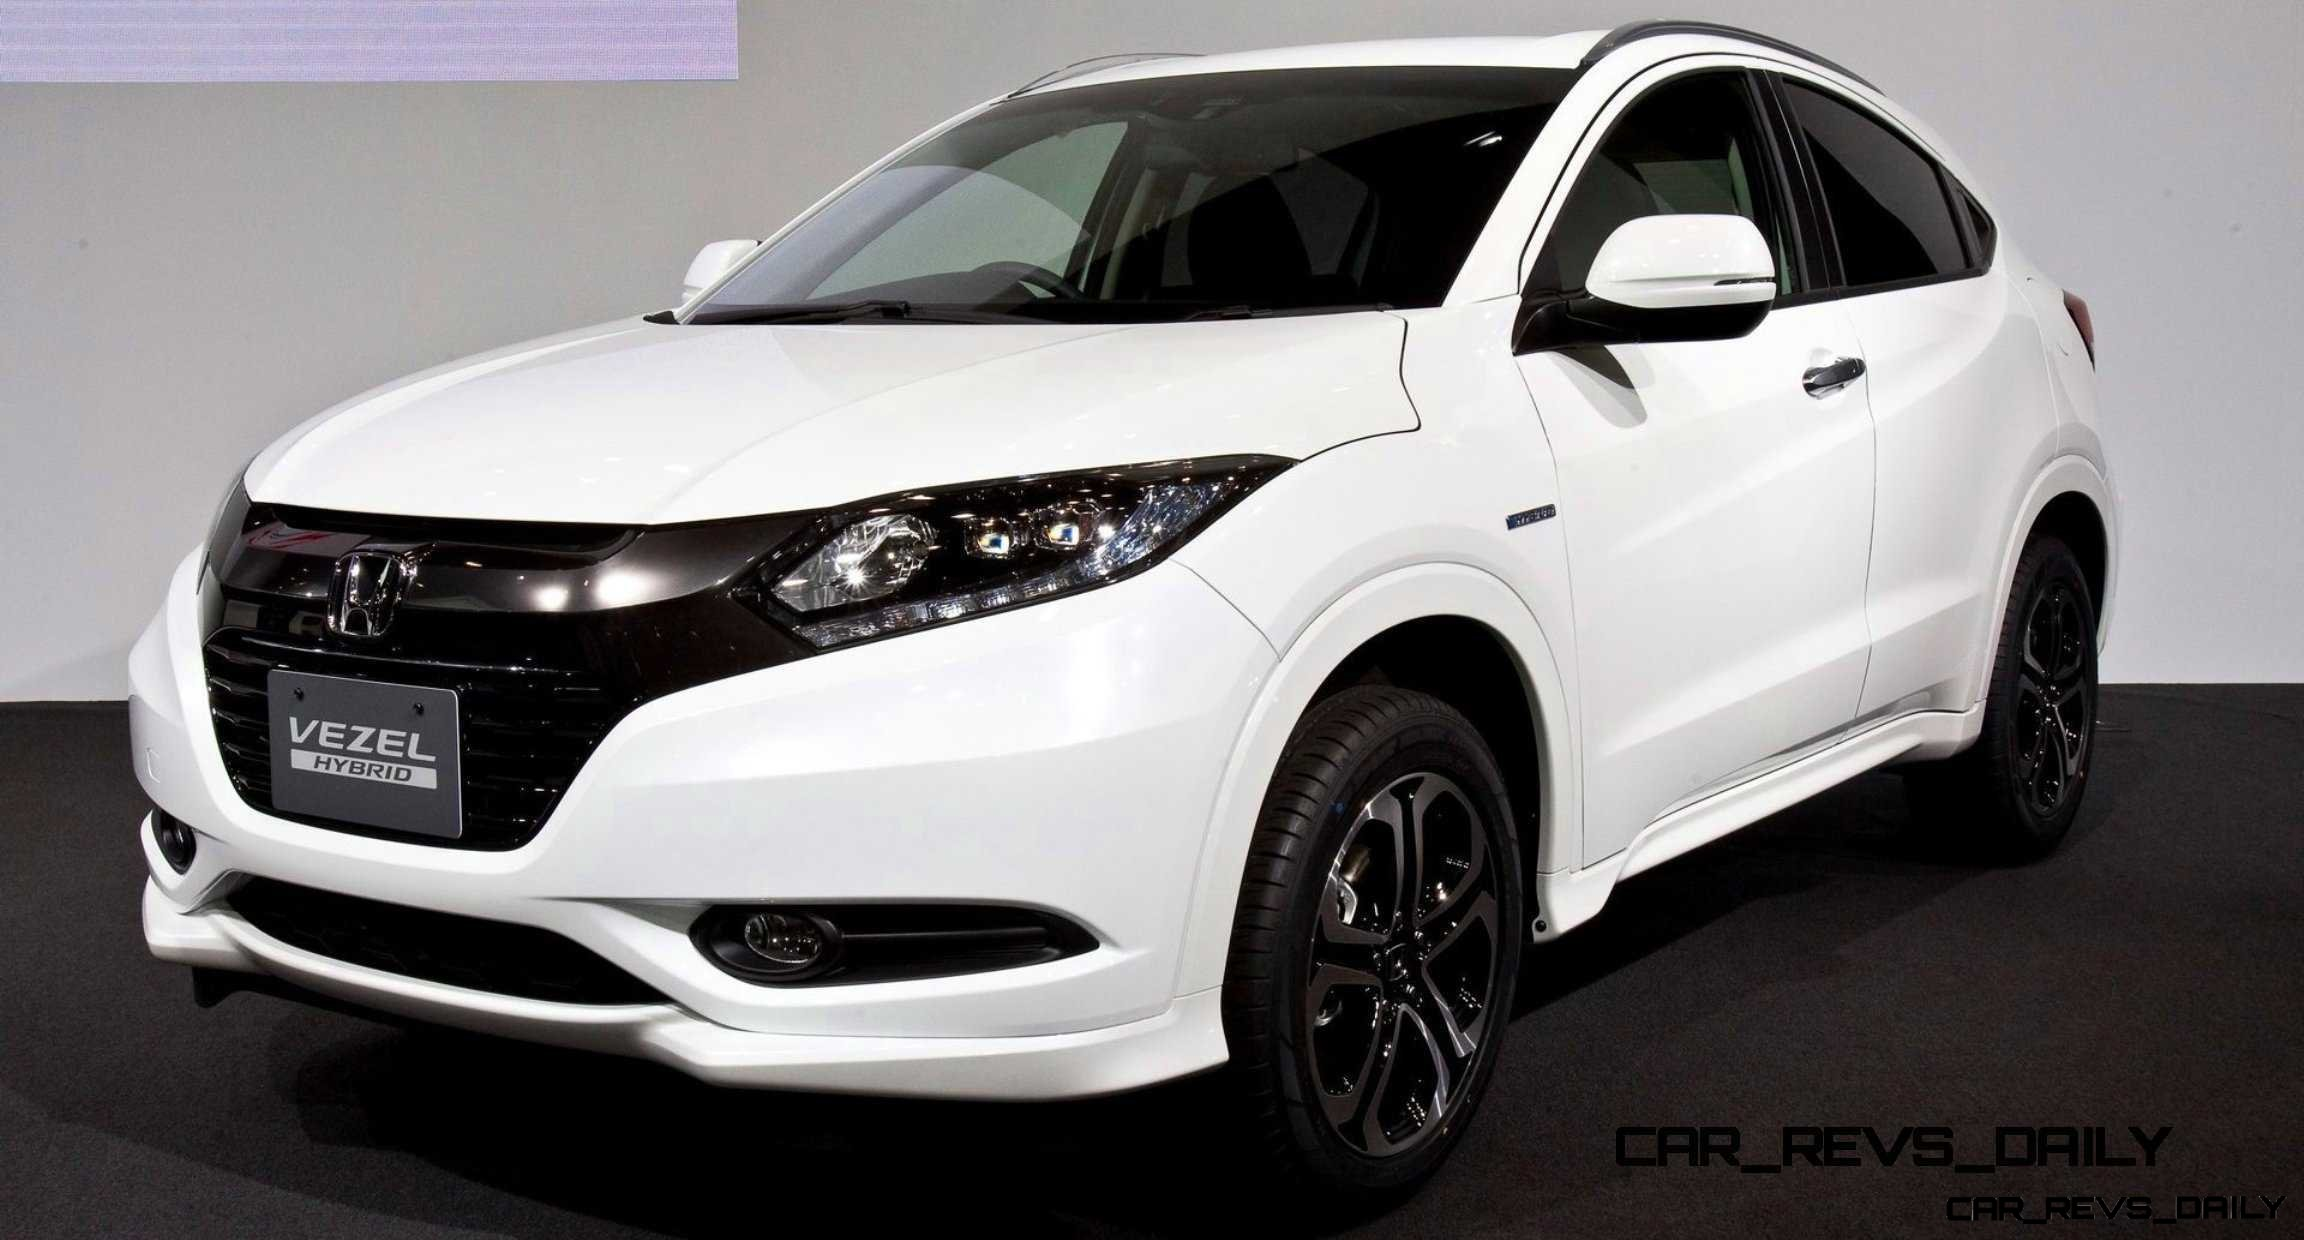 Cool! 2015 Honda Vezel Hybrid Previews Spring 2014 Civic CUV4